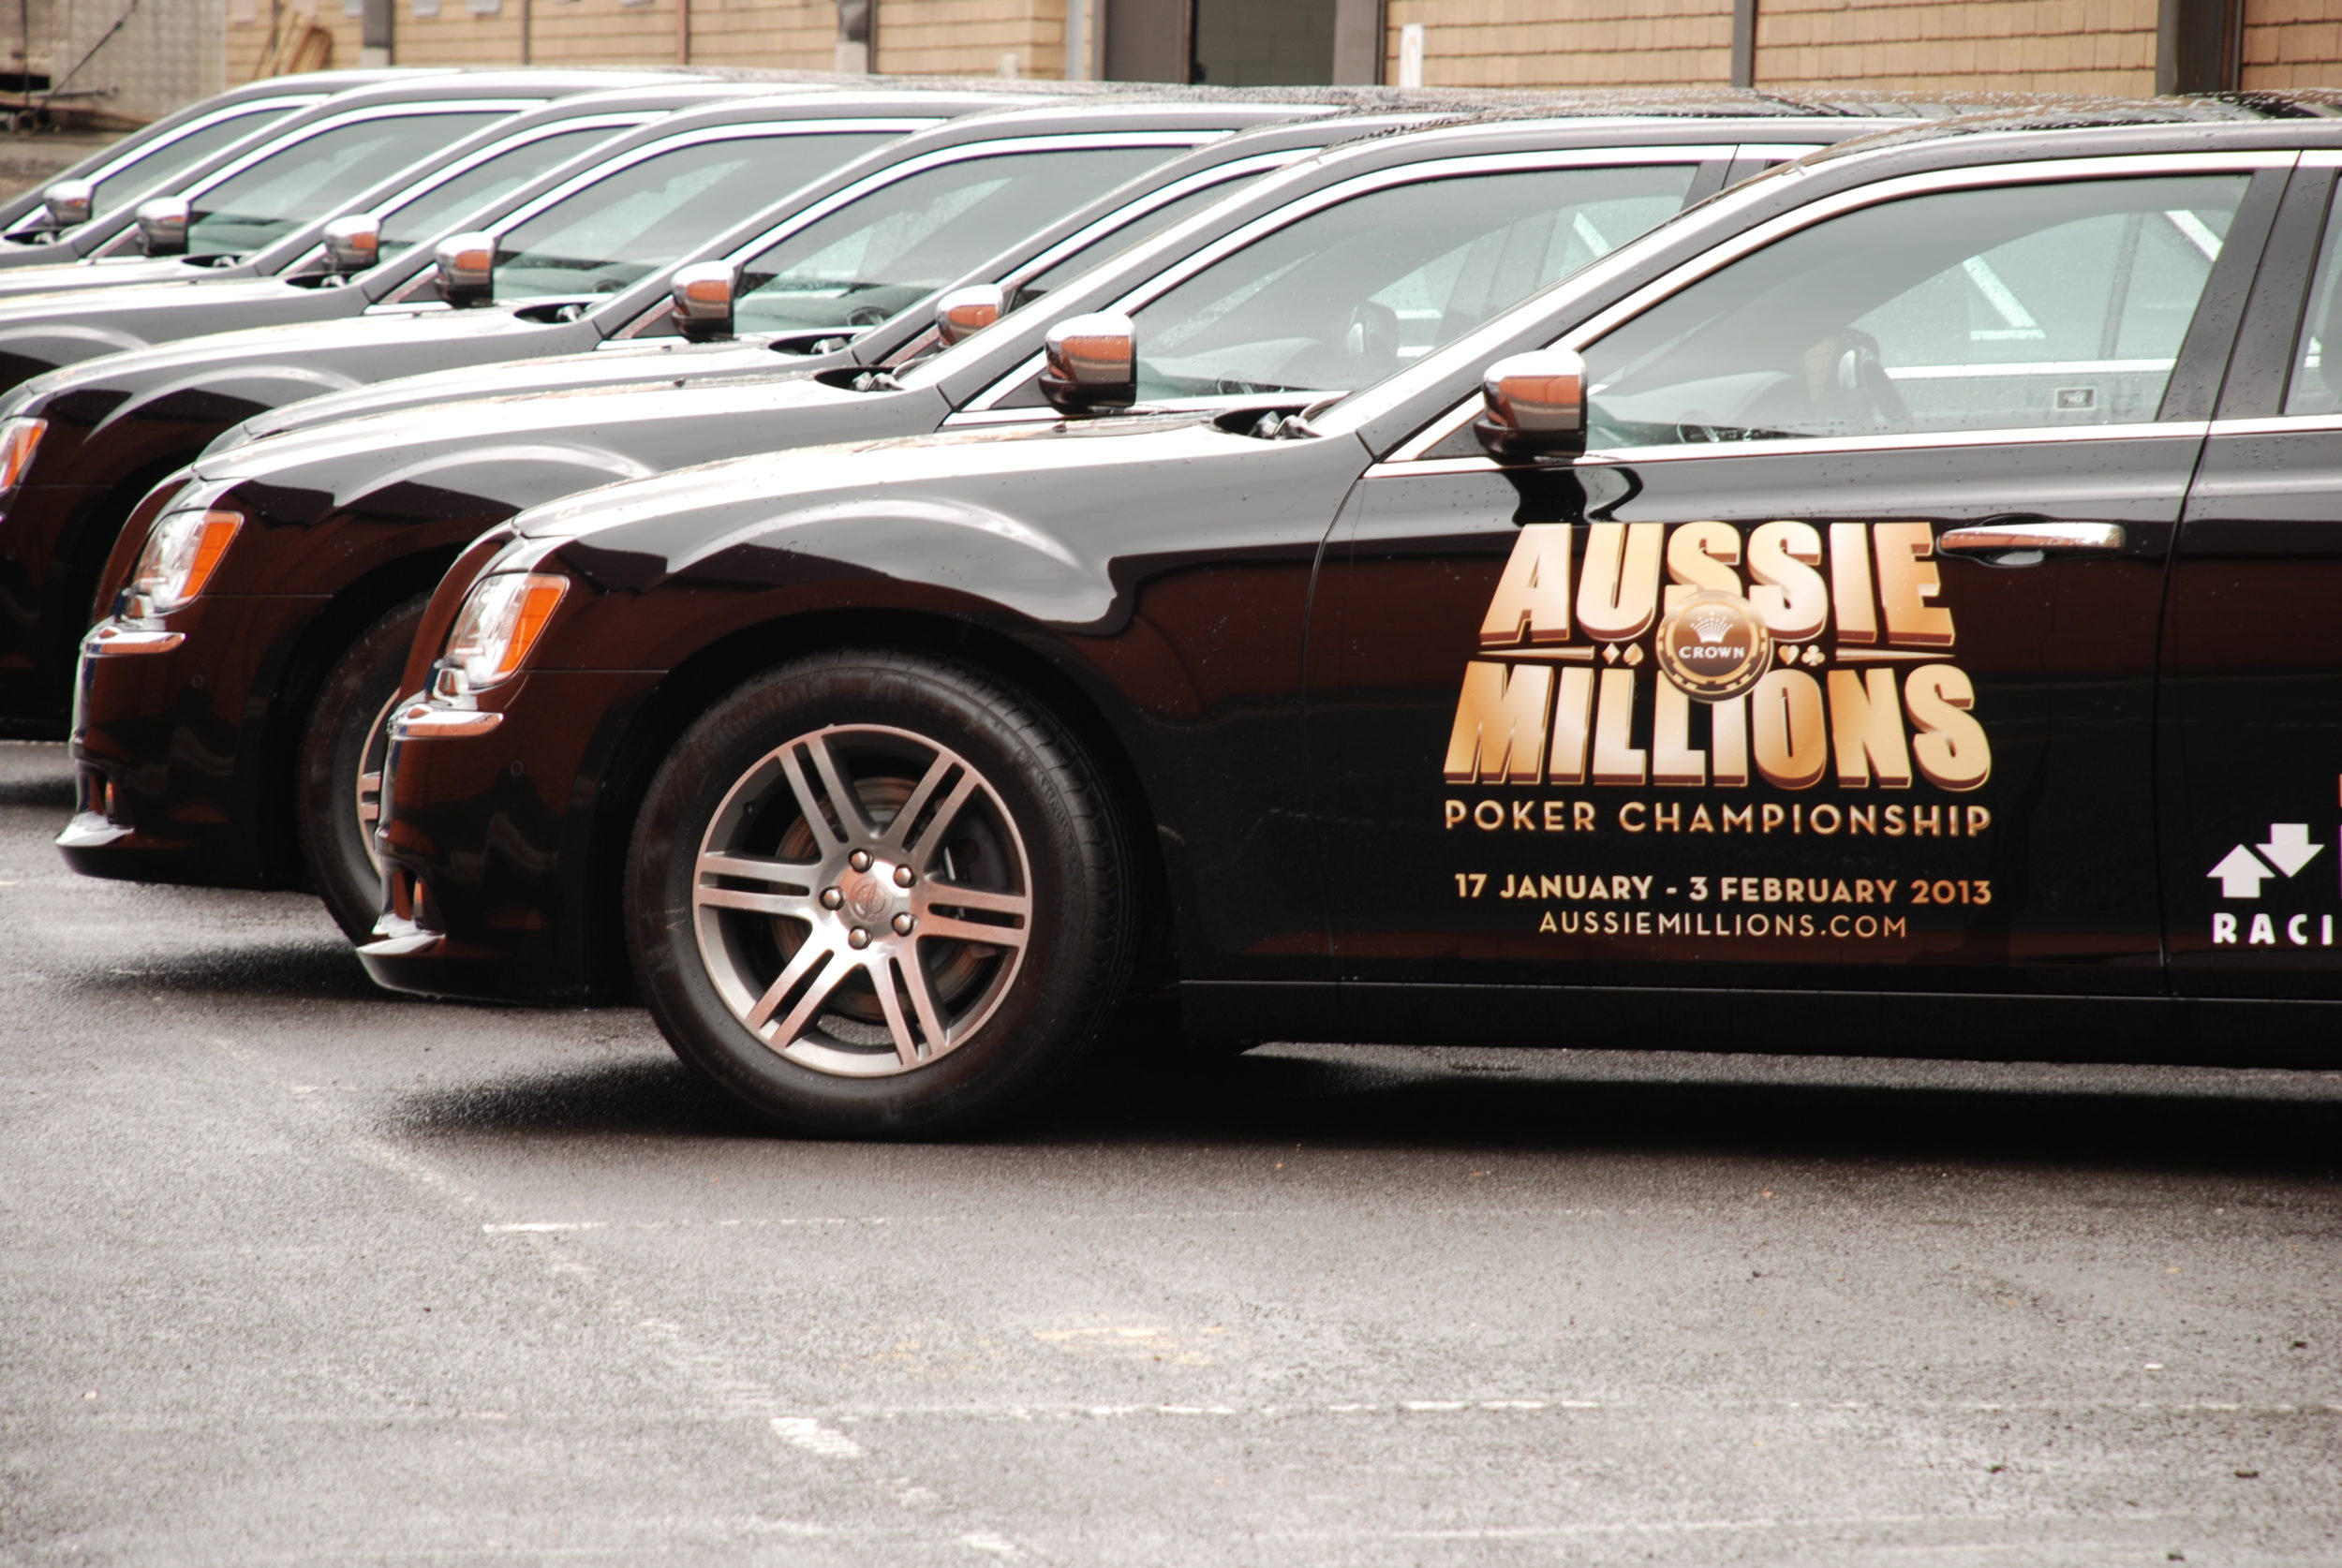 company fleed vehicle stickers for Crown Casino